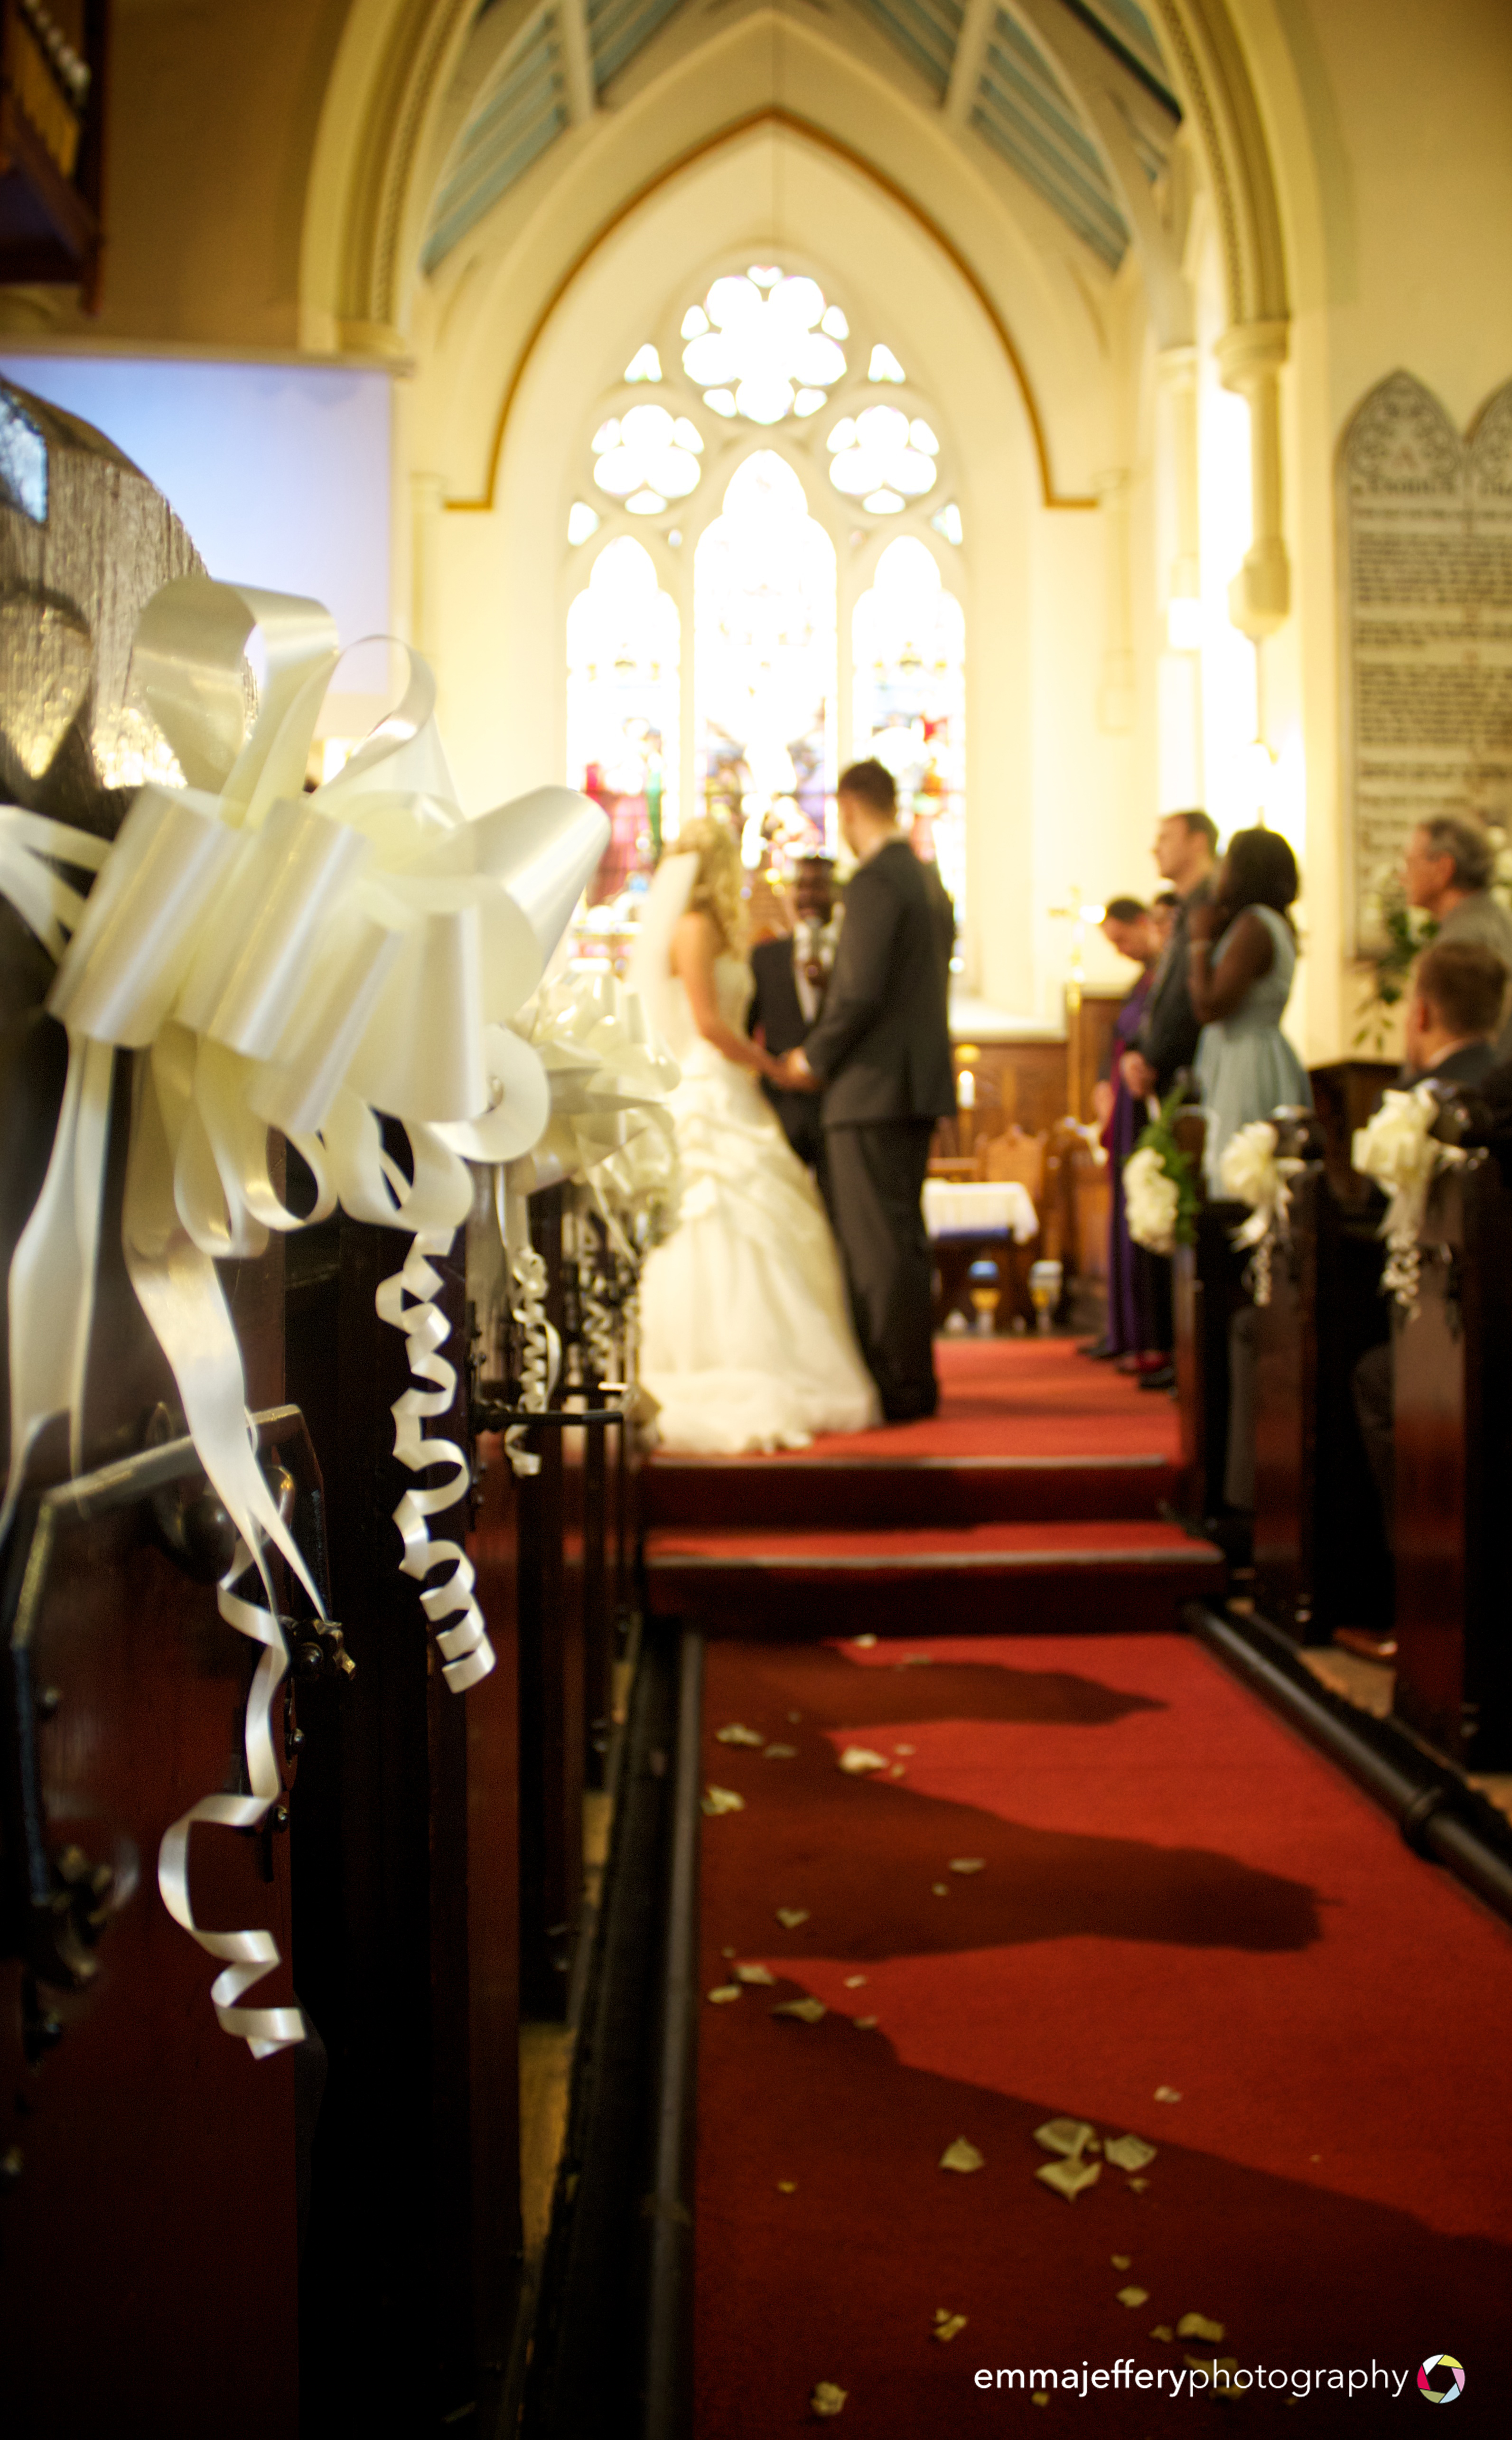 The Wedding Angels – offering an alternative to wedding ...